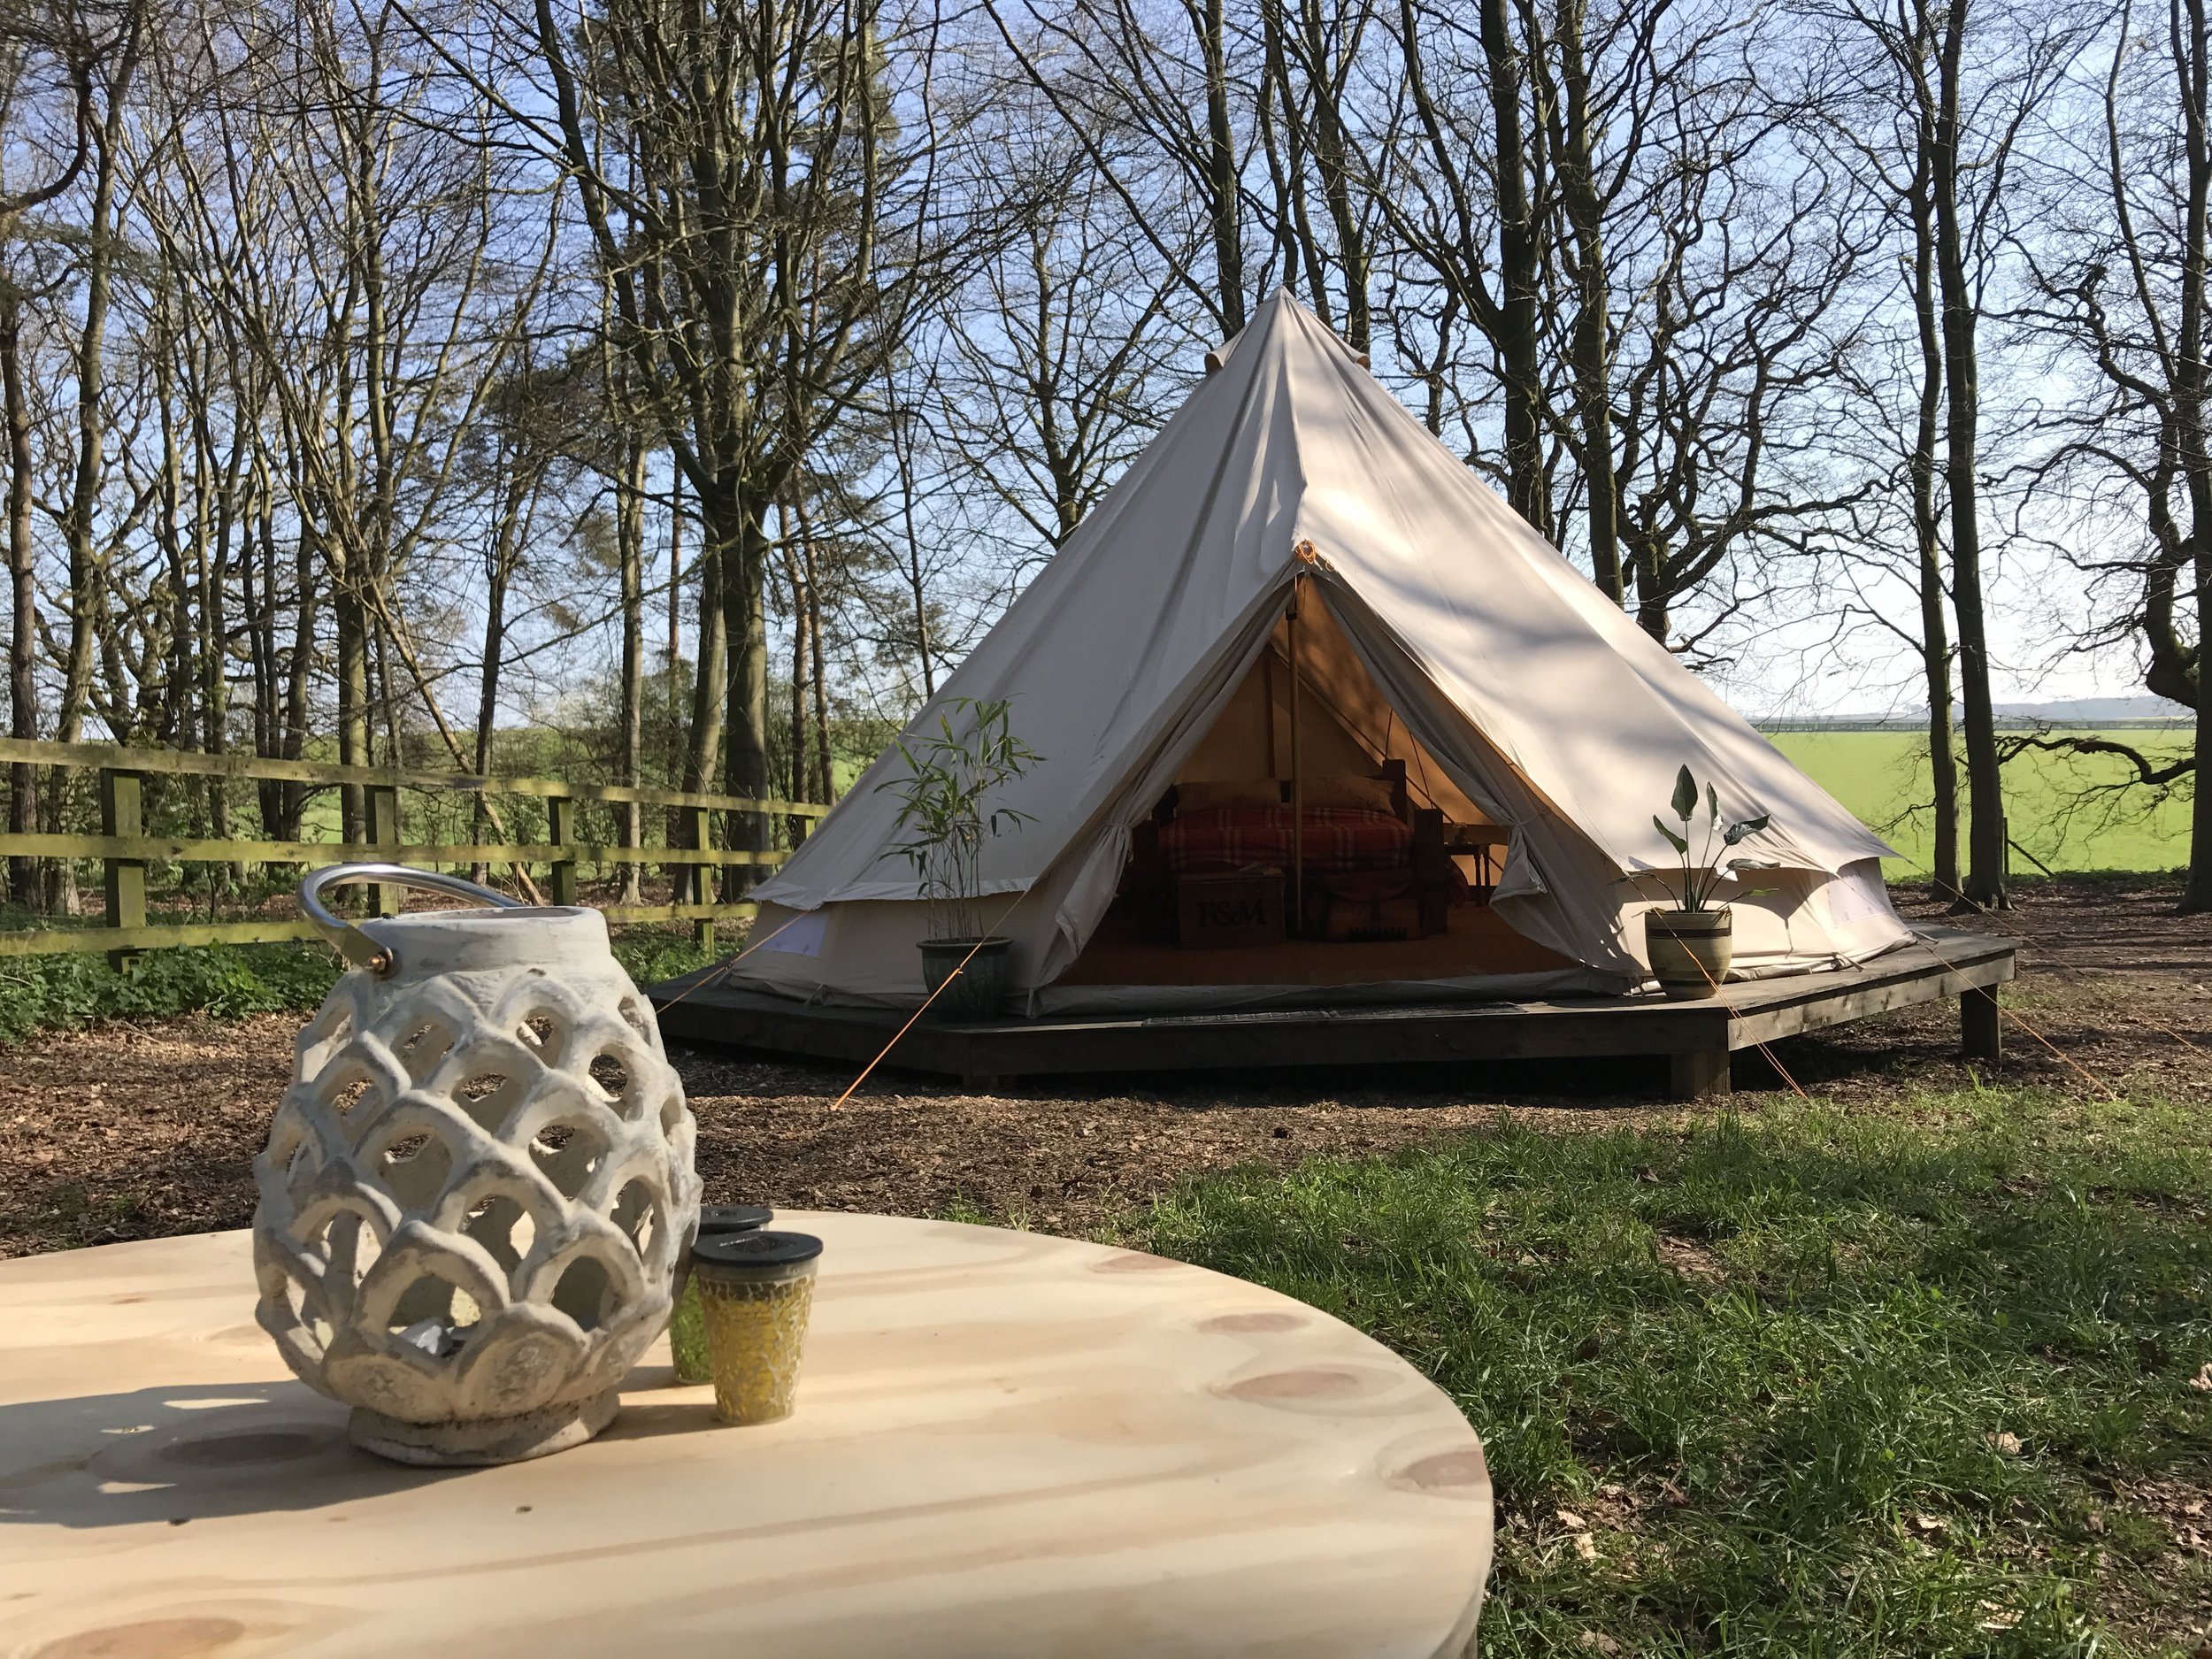 Our Brand New 6m Queenie Bell is up and raring to go. We thought we'd add another King Size Bed as I know we love a big bed and the occasions when the bambinos creep in means you won't be so tight on room. We also added 2 single beds which can be used alone or pushed together.  Camping Plates, bowls, cups, cutlery are included - BBQ, Washing up bowl & Gas camping stove. All with a Beautiful Woodland Garden to immerse yourselves in.  Email hello@happyvalleynorfolk.co.uk or call Katy on 01485 600719